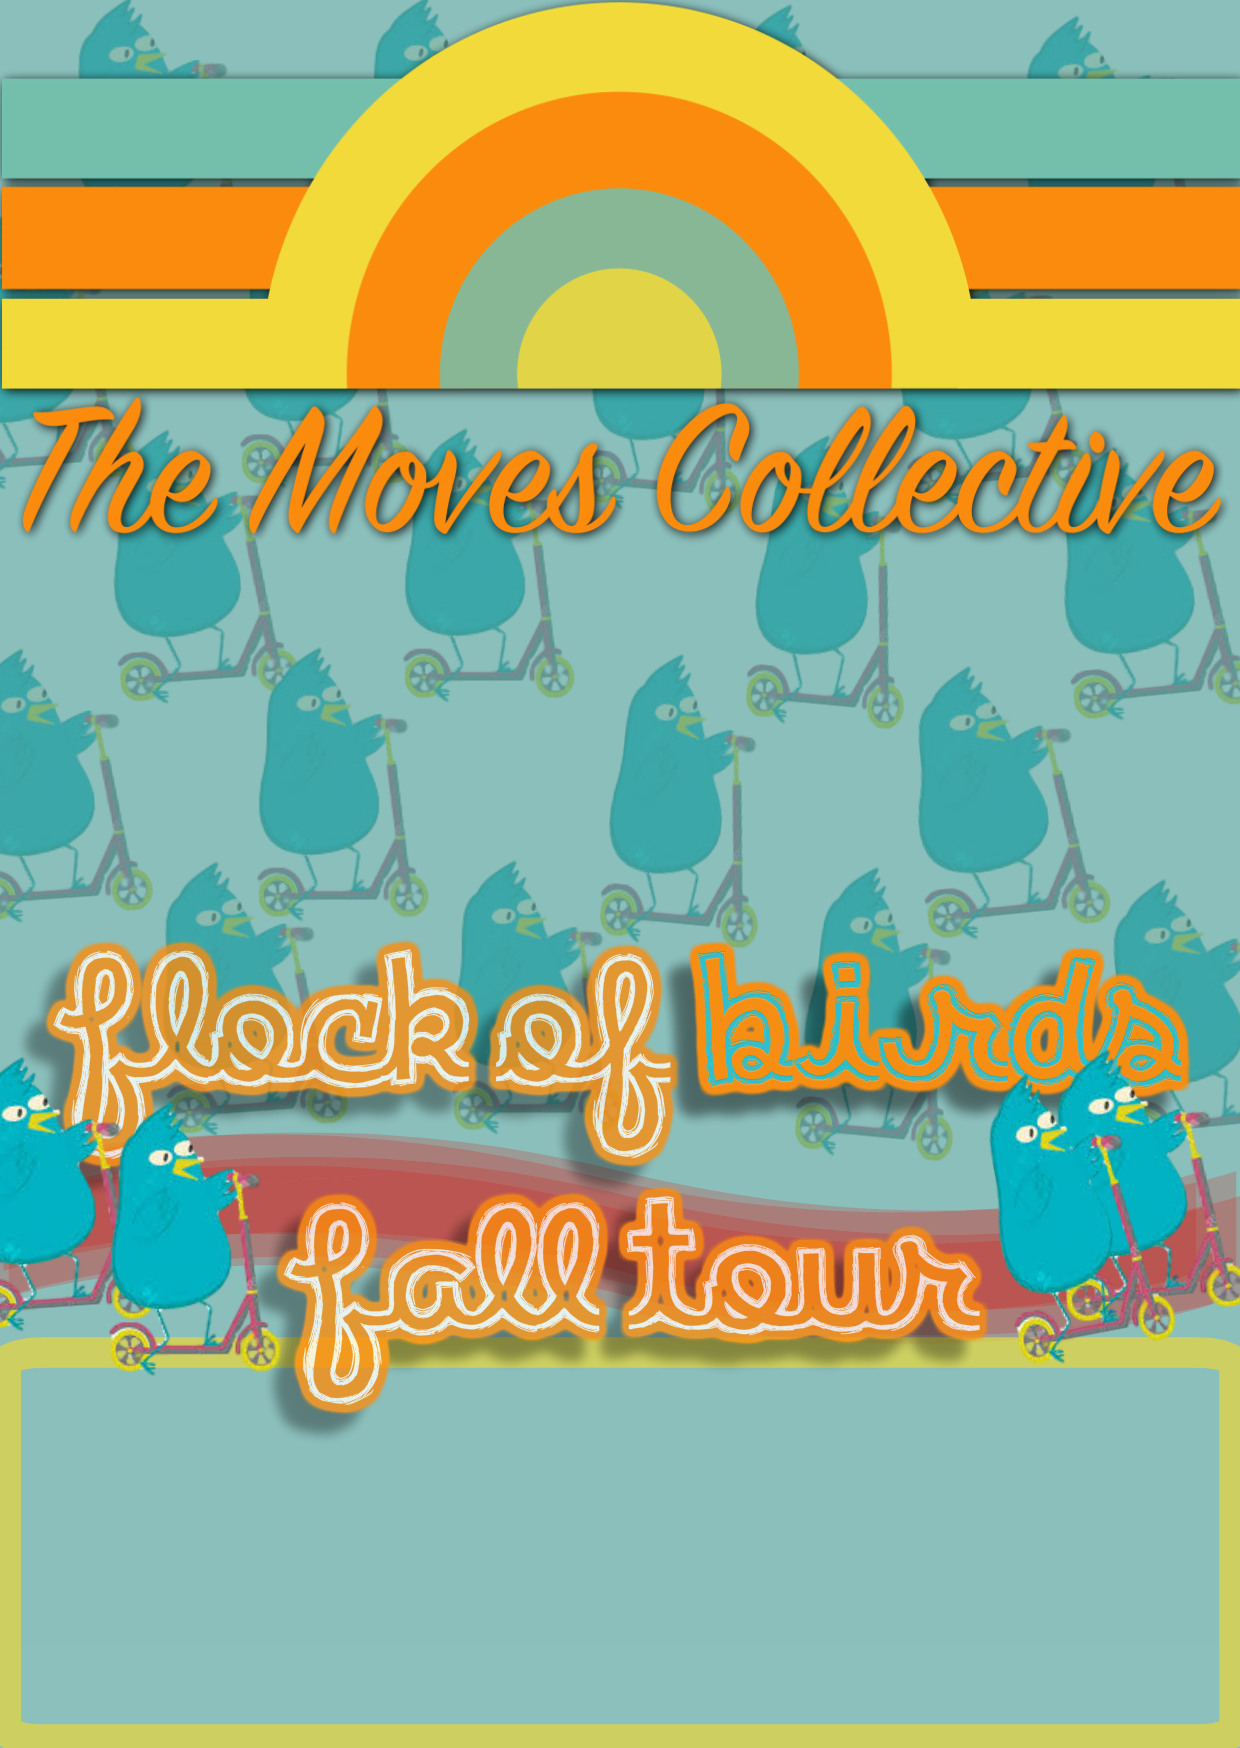 Flock_of_birds_tour_poster_ADMAT_v3.png